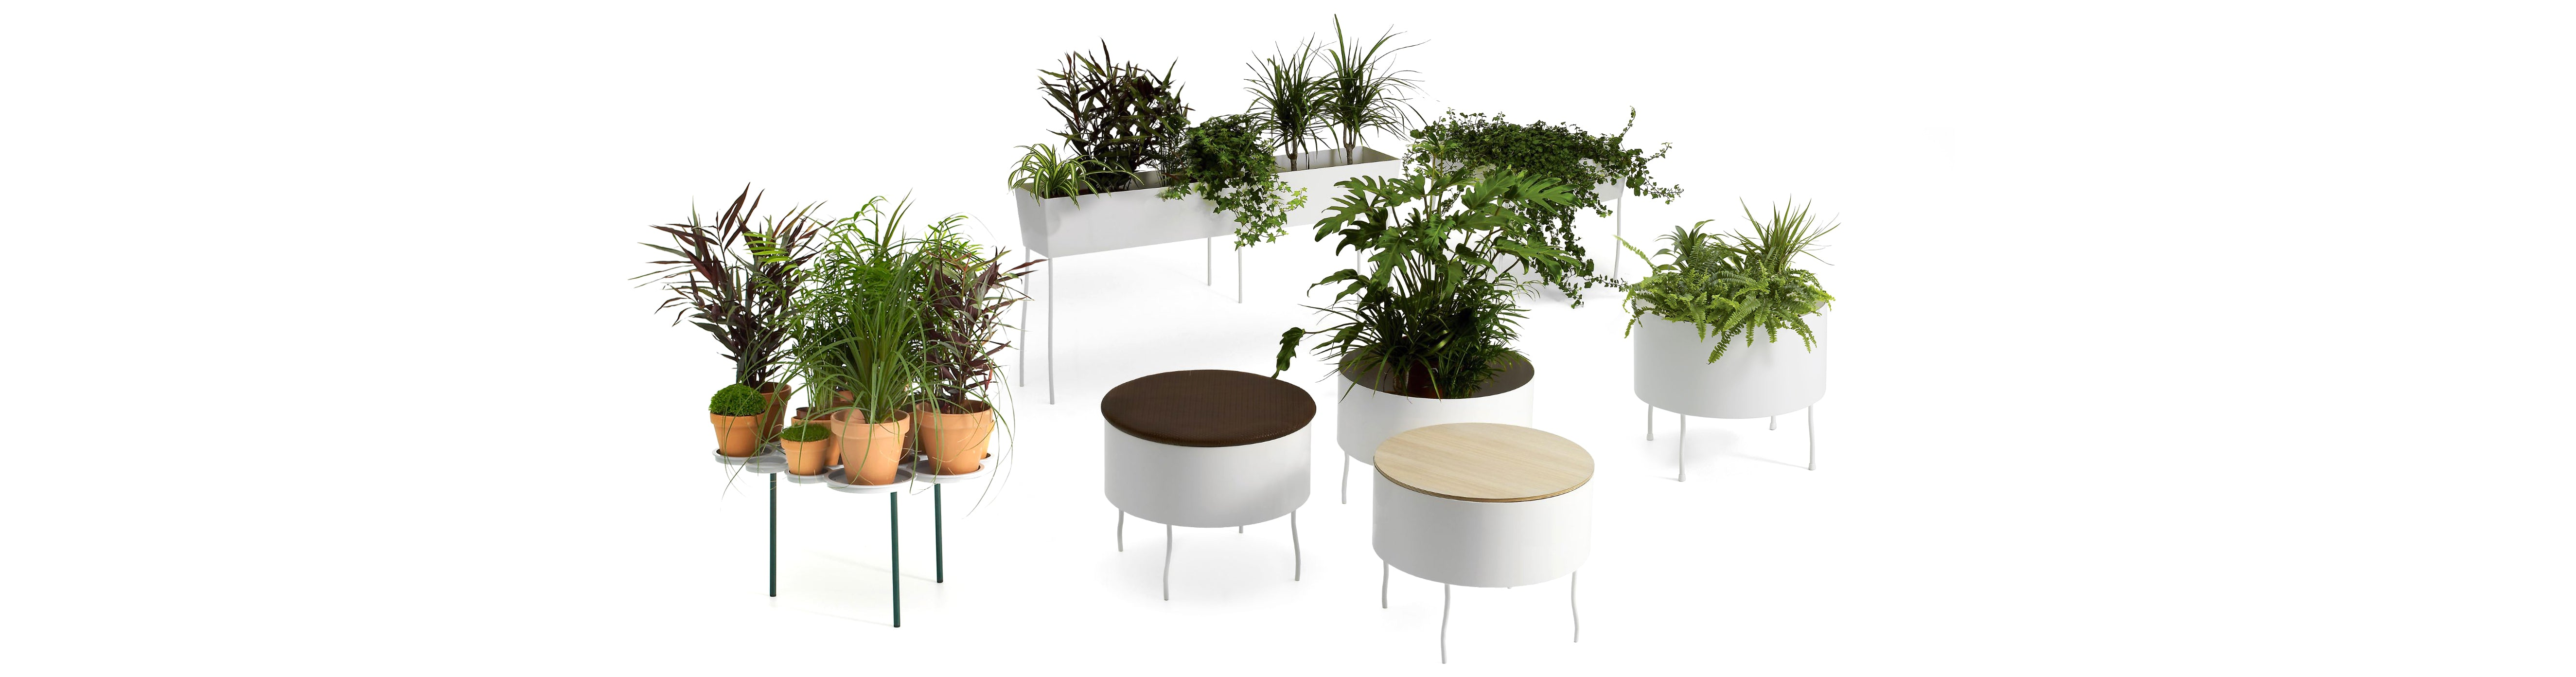 Offecct O2ASIS Green Pedestal Round Plant Stand